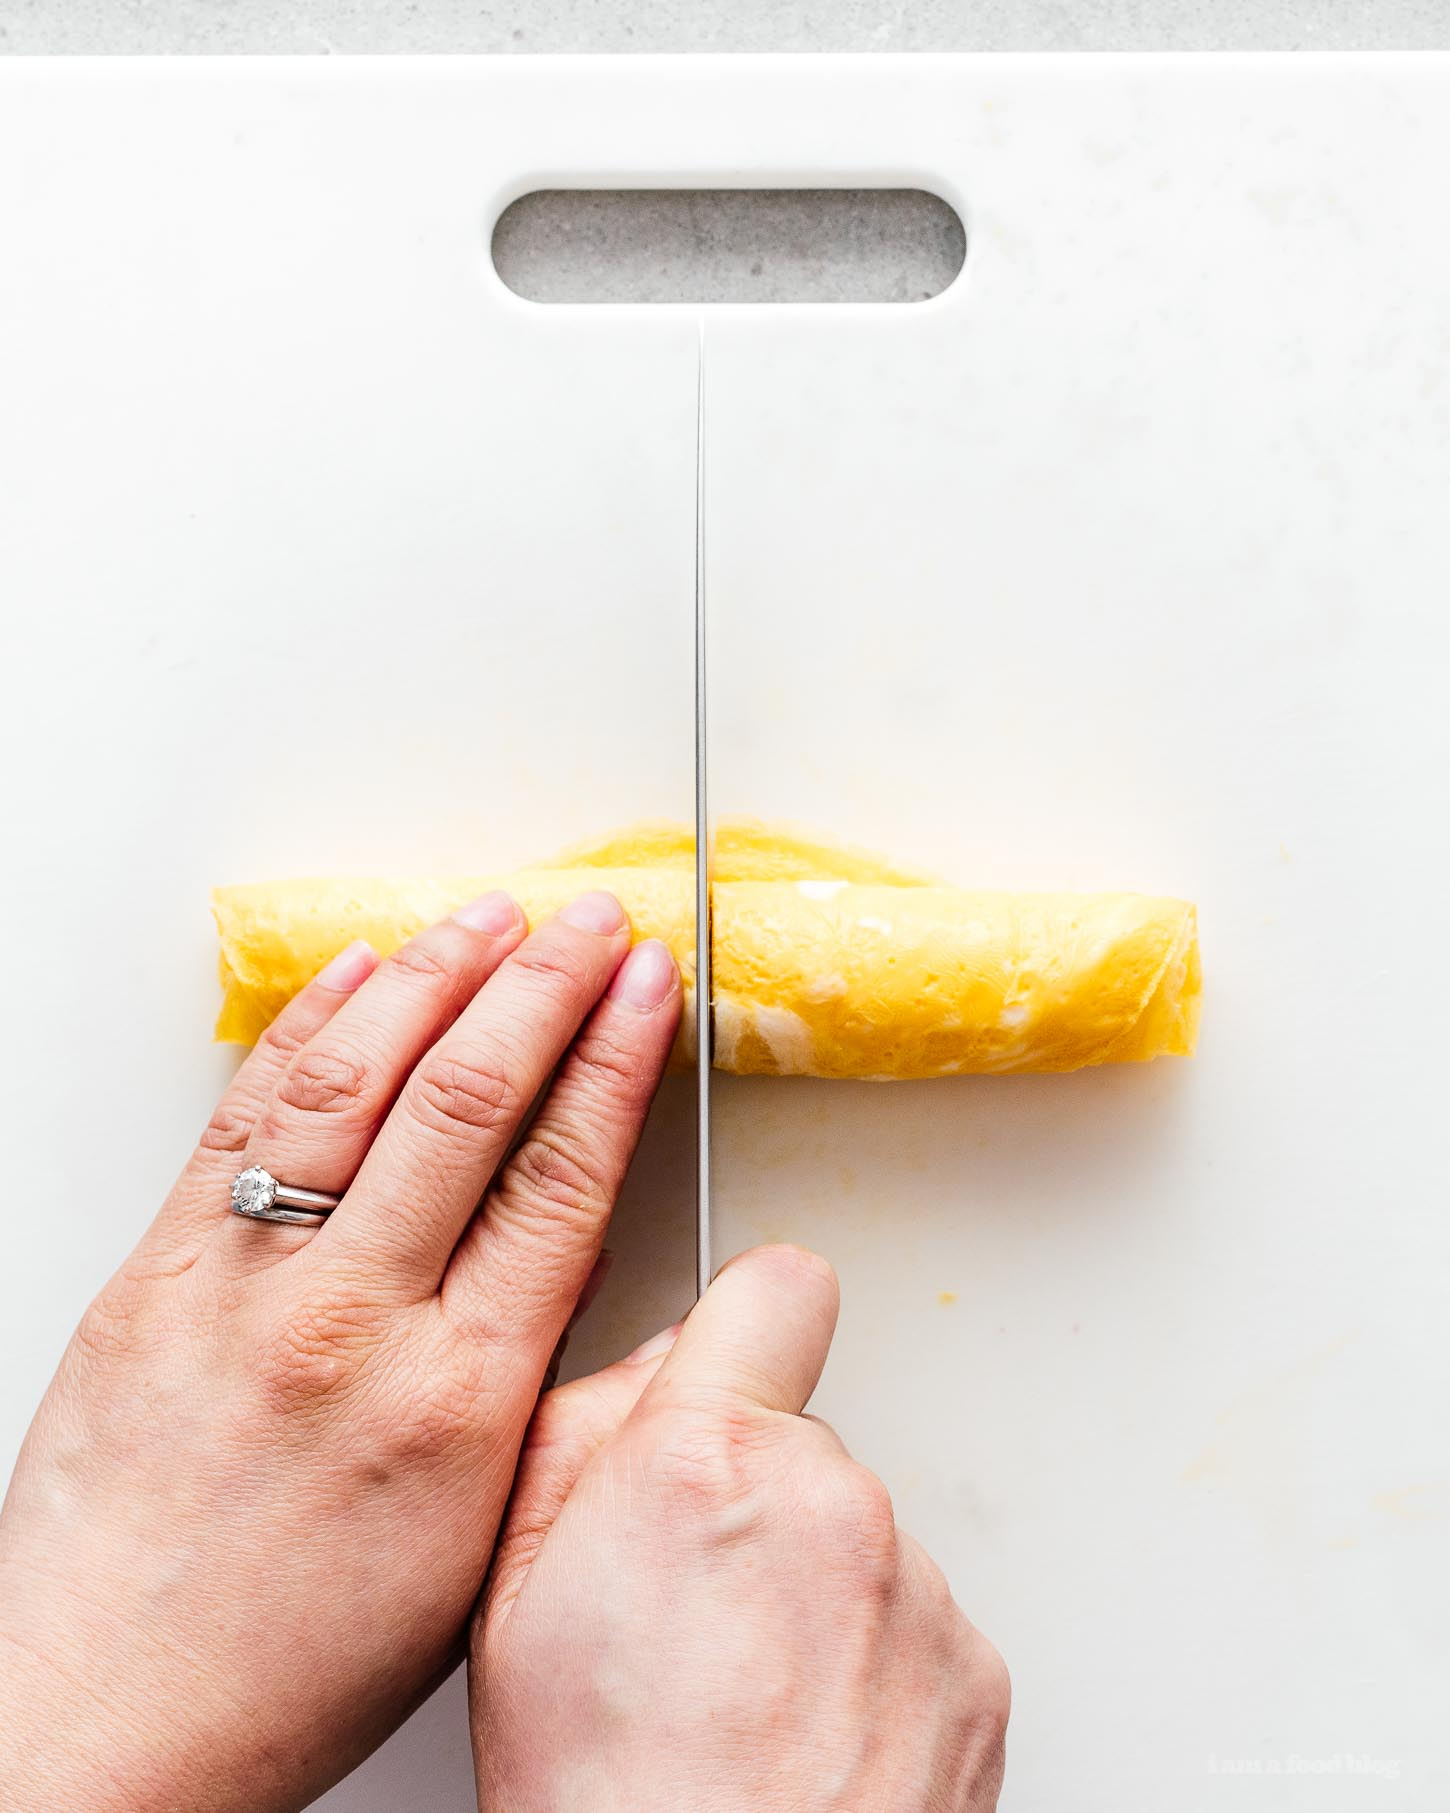 How to Make Egg Ribbons | www.iamafoodblog.com